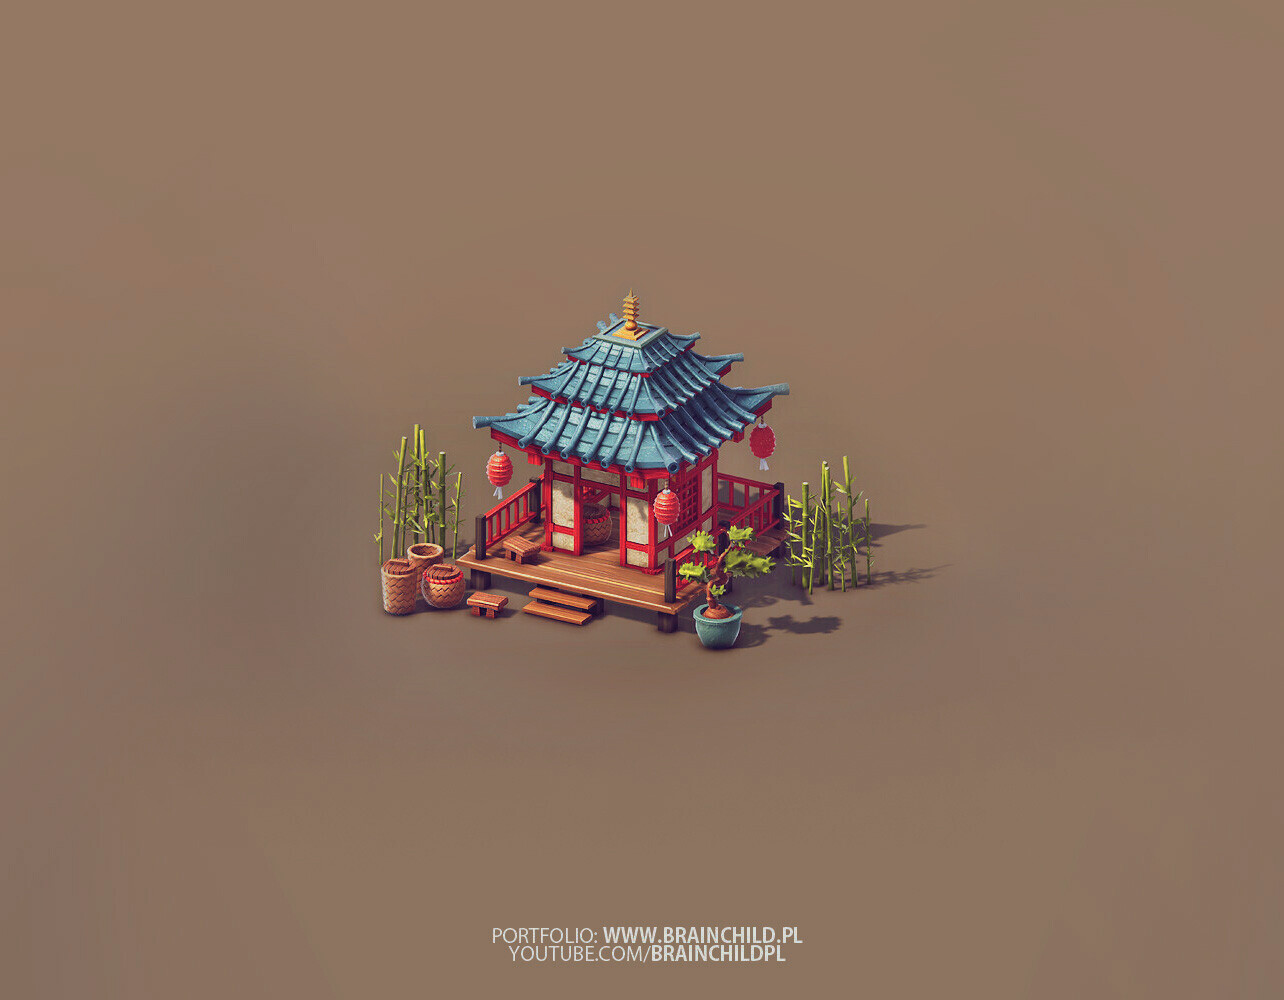 Low Poly Game art, 3d Low Poly Buildings, 3d Game Buildings, Lowpoly 3d Art